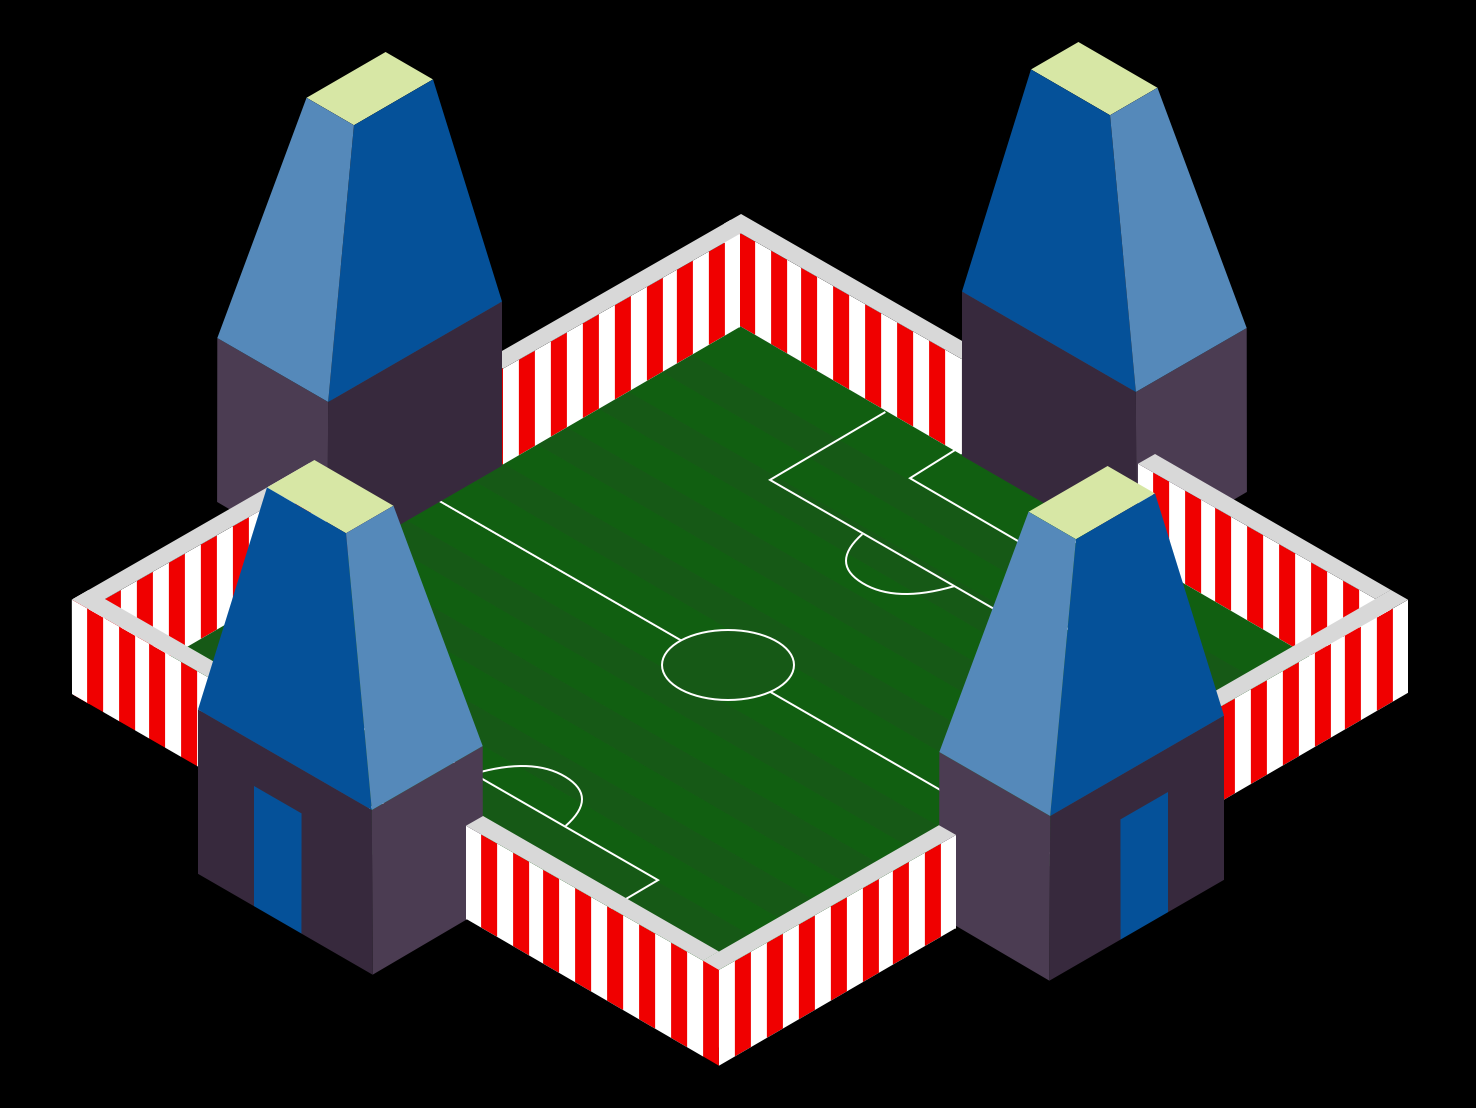 Temple Soccer art vector graphicdesign south india india temple illustration isometric soccer